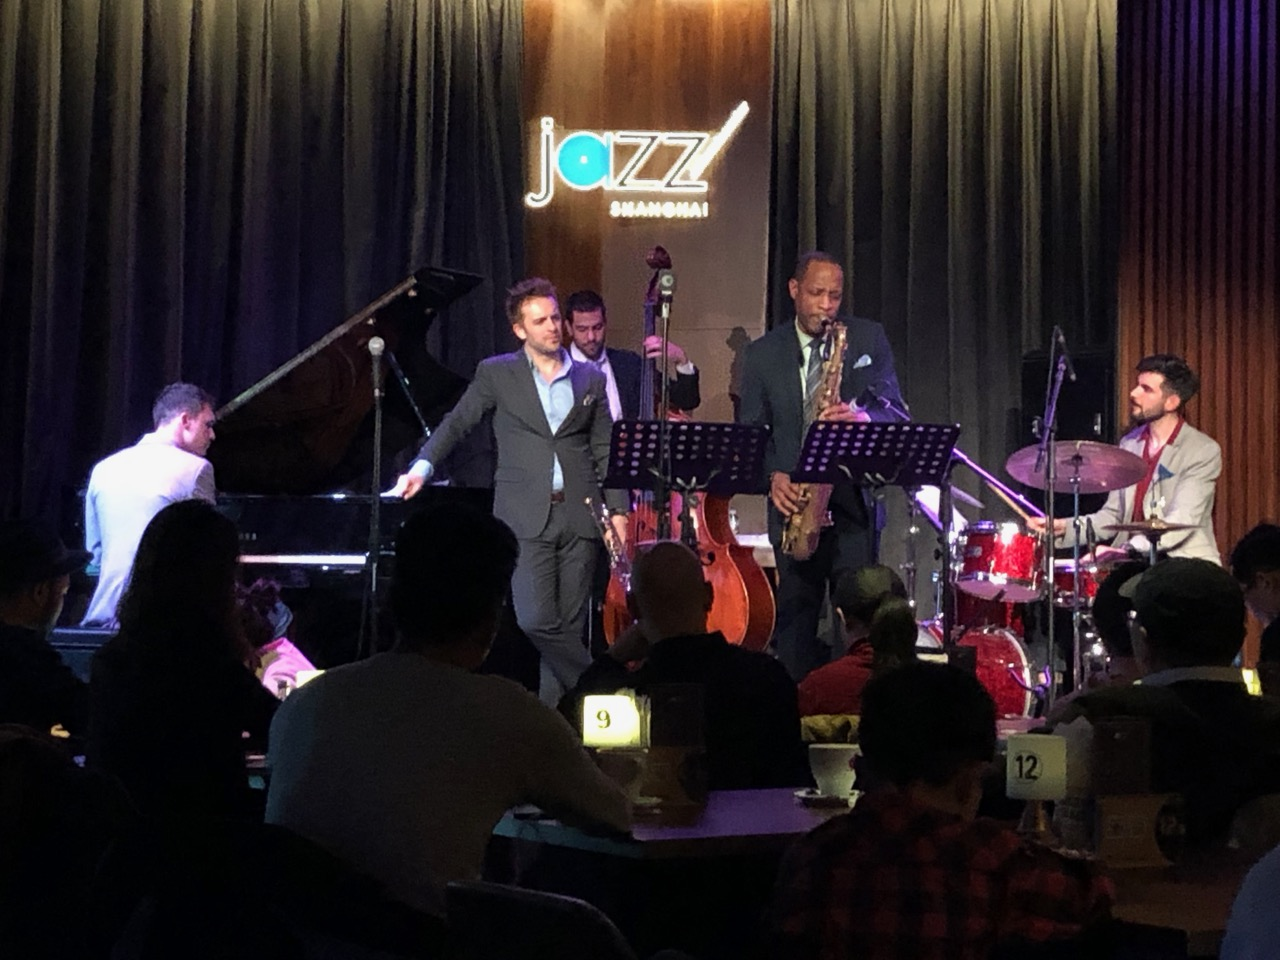 The Benny Benack Quartet with guest musician Walter Blanding, at Jazz at Lincoln Center Shanghai April 30 2019